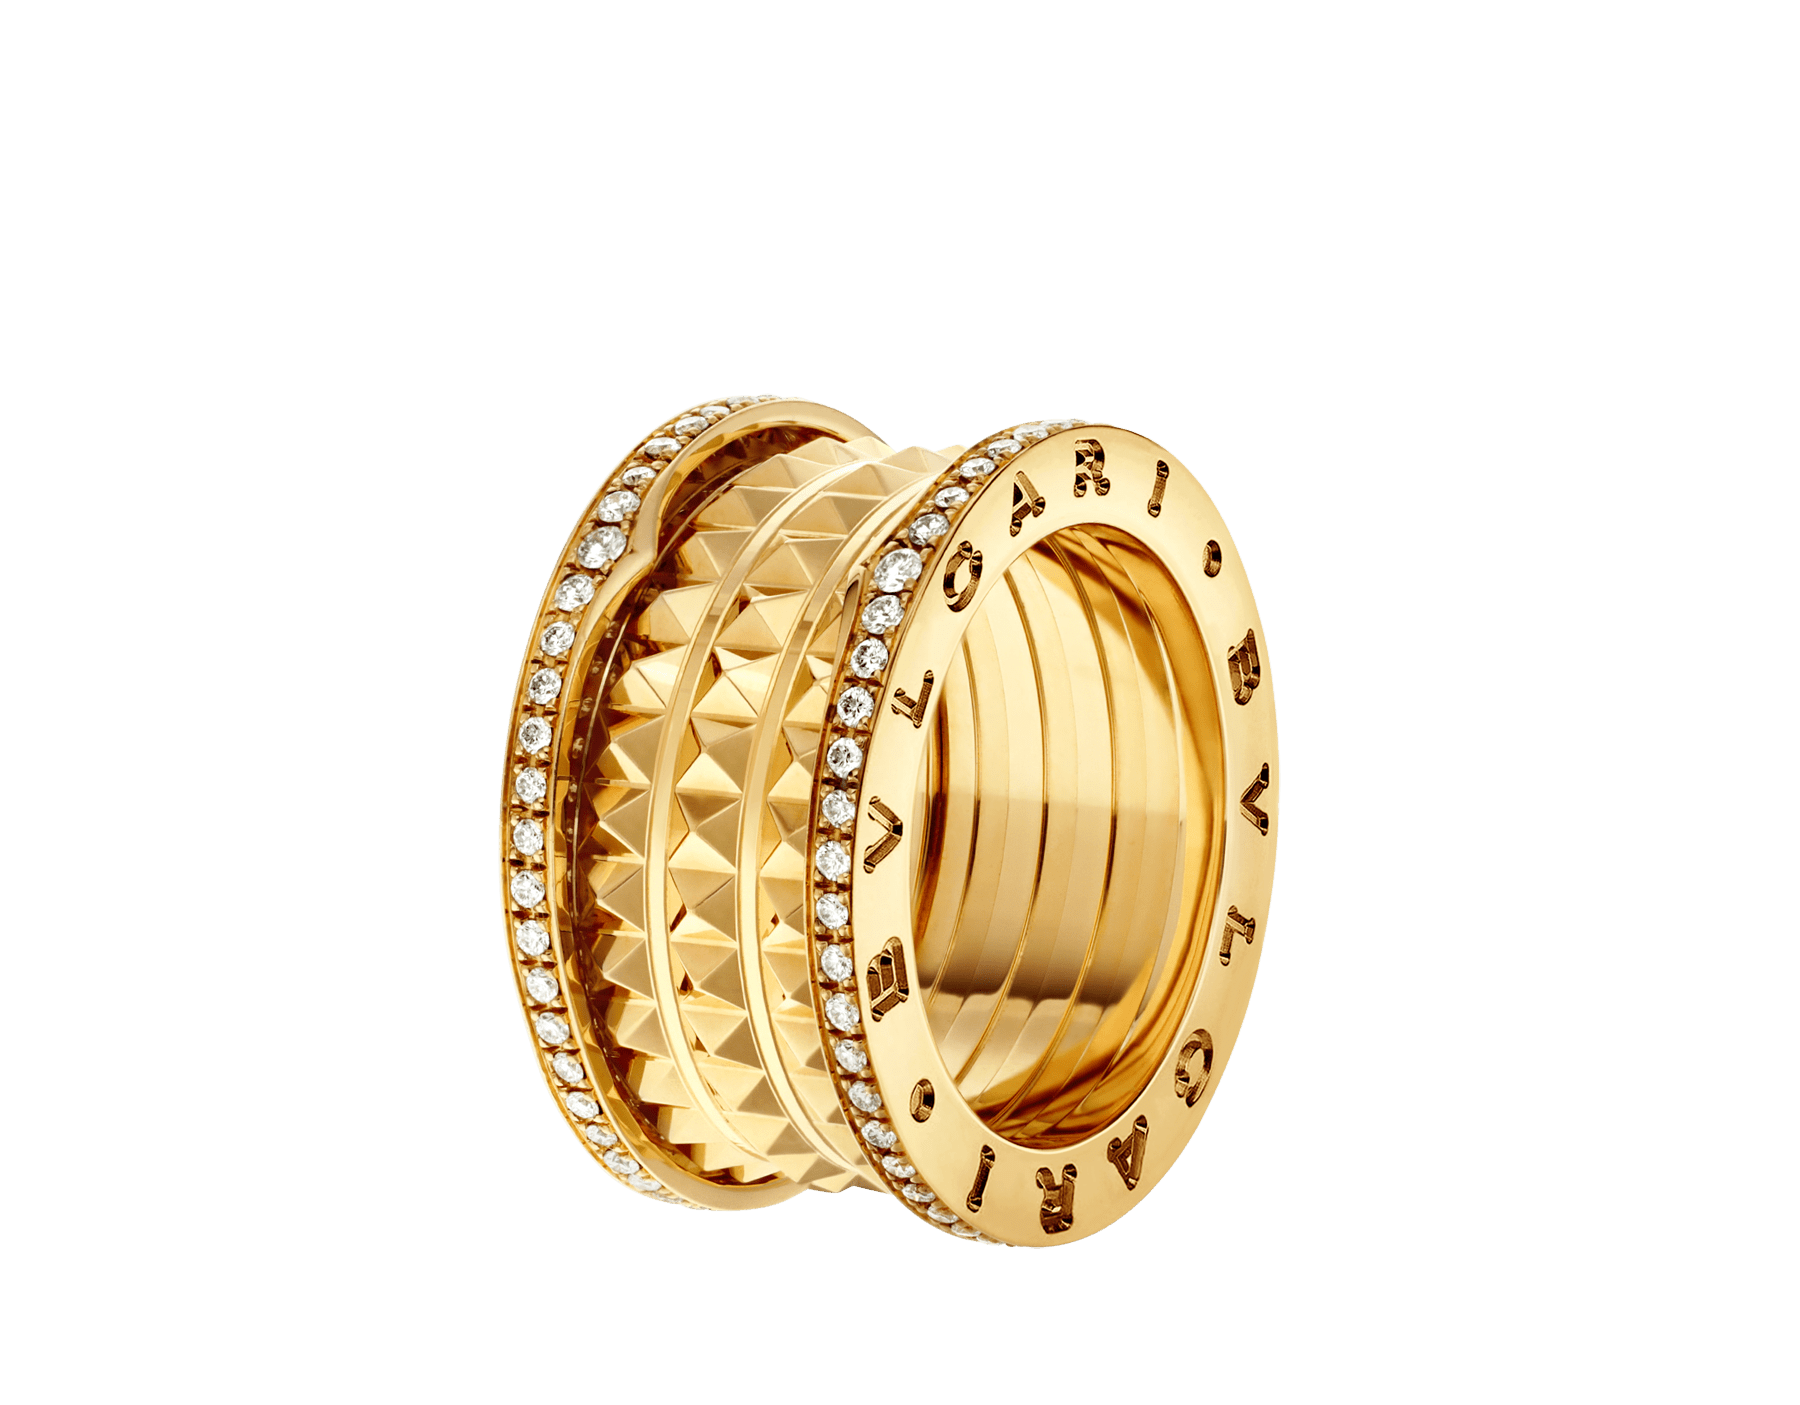 Bagues pour couples B.zero1 Rock et B.zero1 en or jaune 18 K, dont une avec spirale cloutée et pavé diamant sur les bords. Un duo de bagues intemporel au design avant-gardiste mêlé à un charme audacieux. Bzero1-Rock-and-Bzero1-Yellow-Gold-Couples-Rings image 2